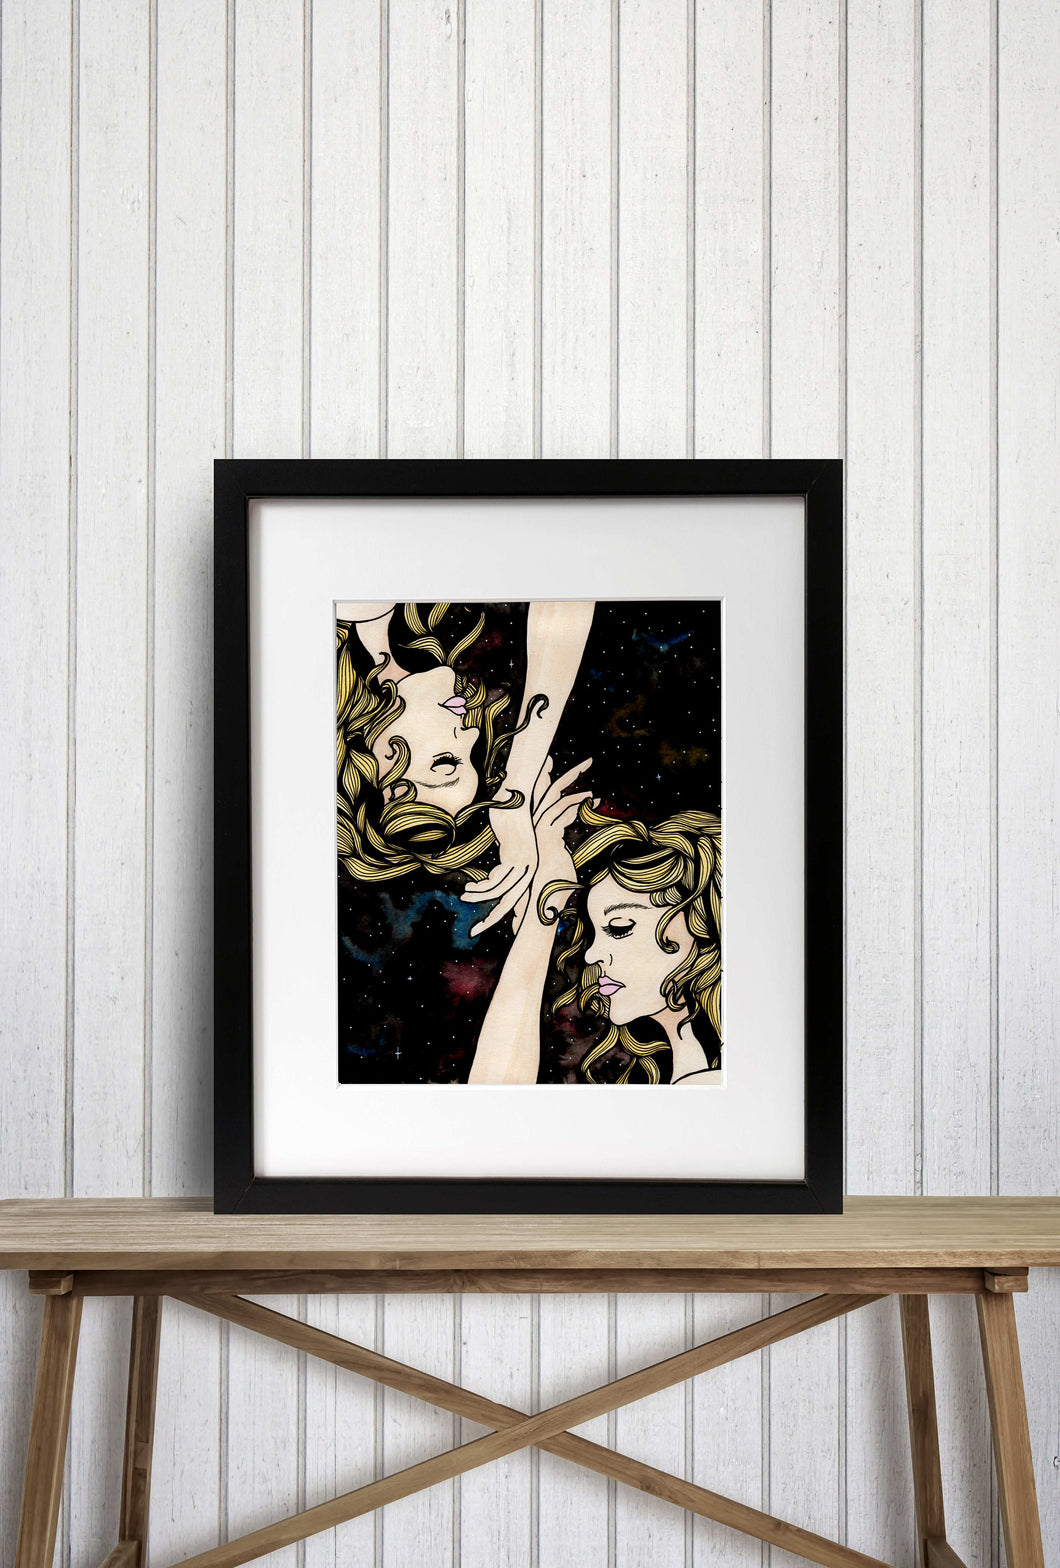 Gemini Twins - Astrology Inspired Watercolor Painting - Art Print